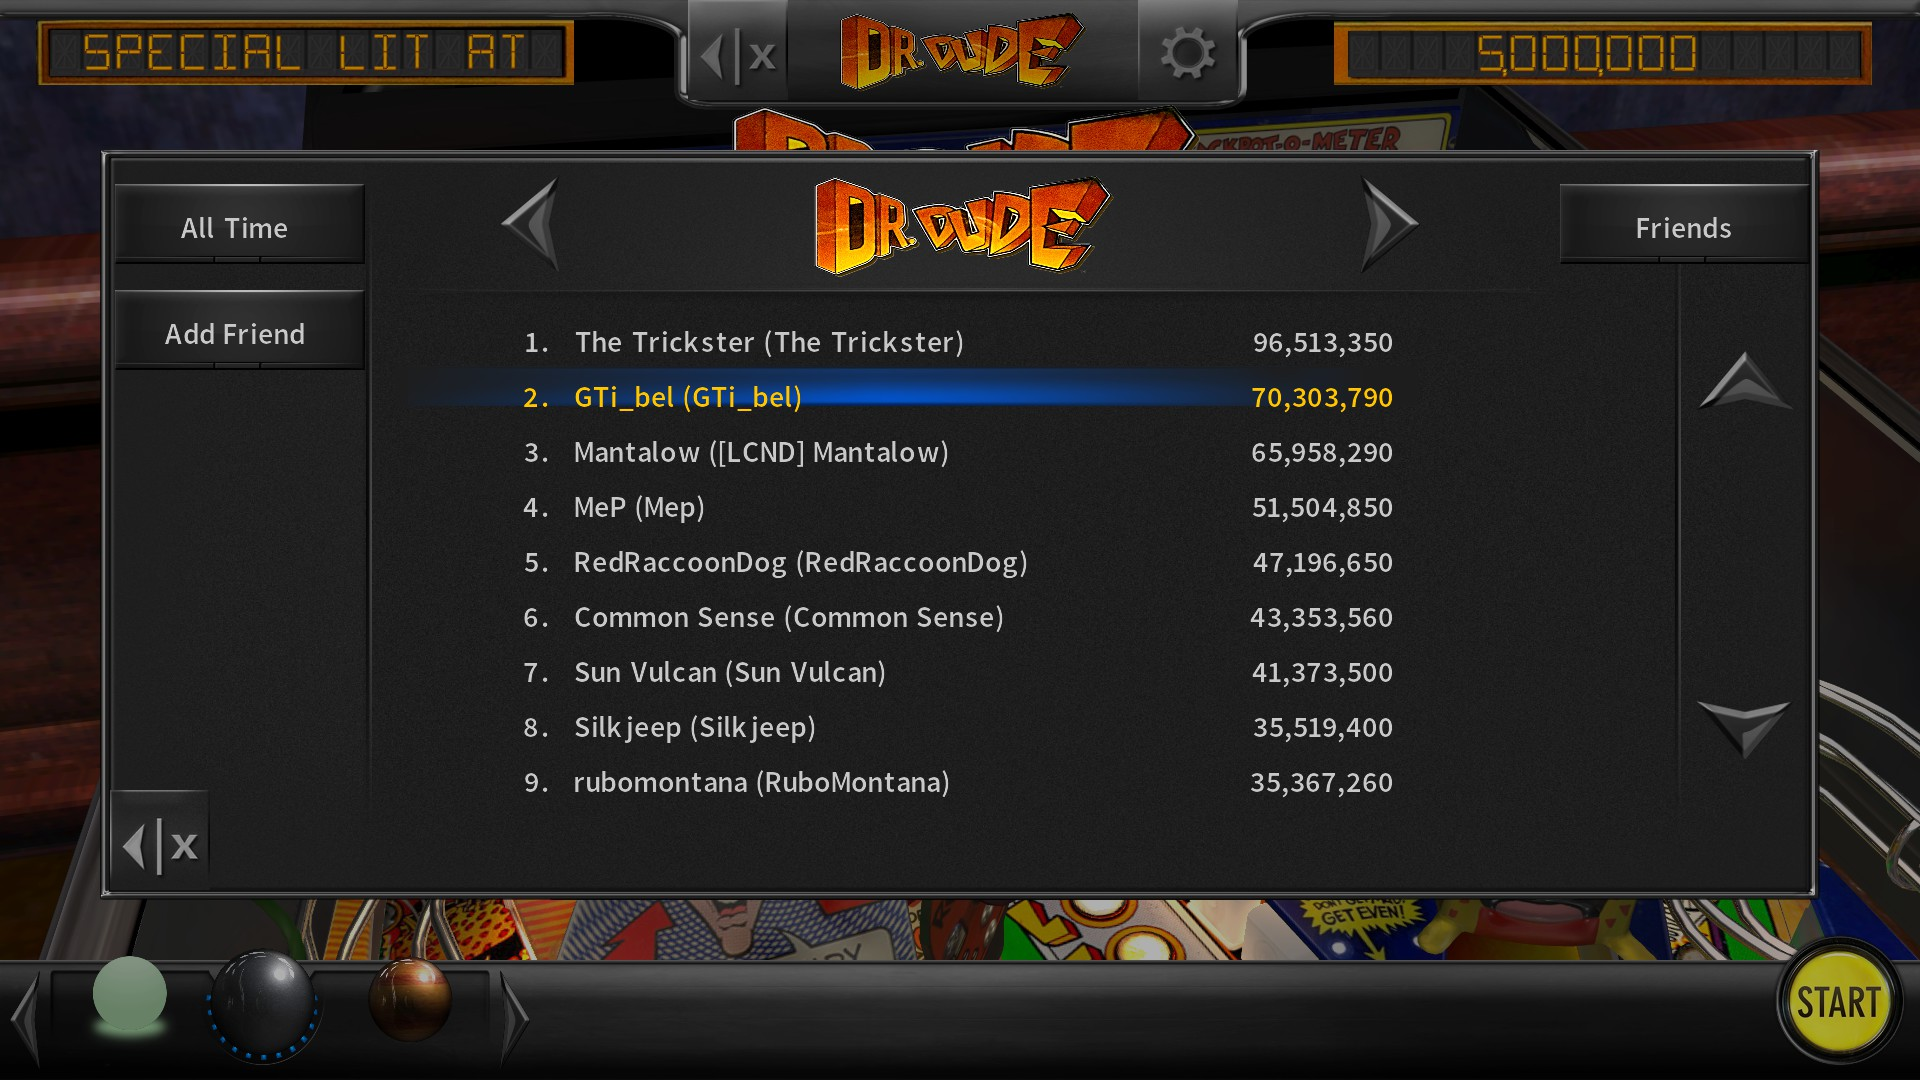 GTibel: Pinball Arcade: Dr. Dude (PC) 70,303,790 points on 2017-09-21 13:50:06